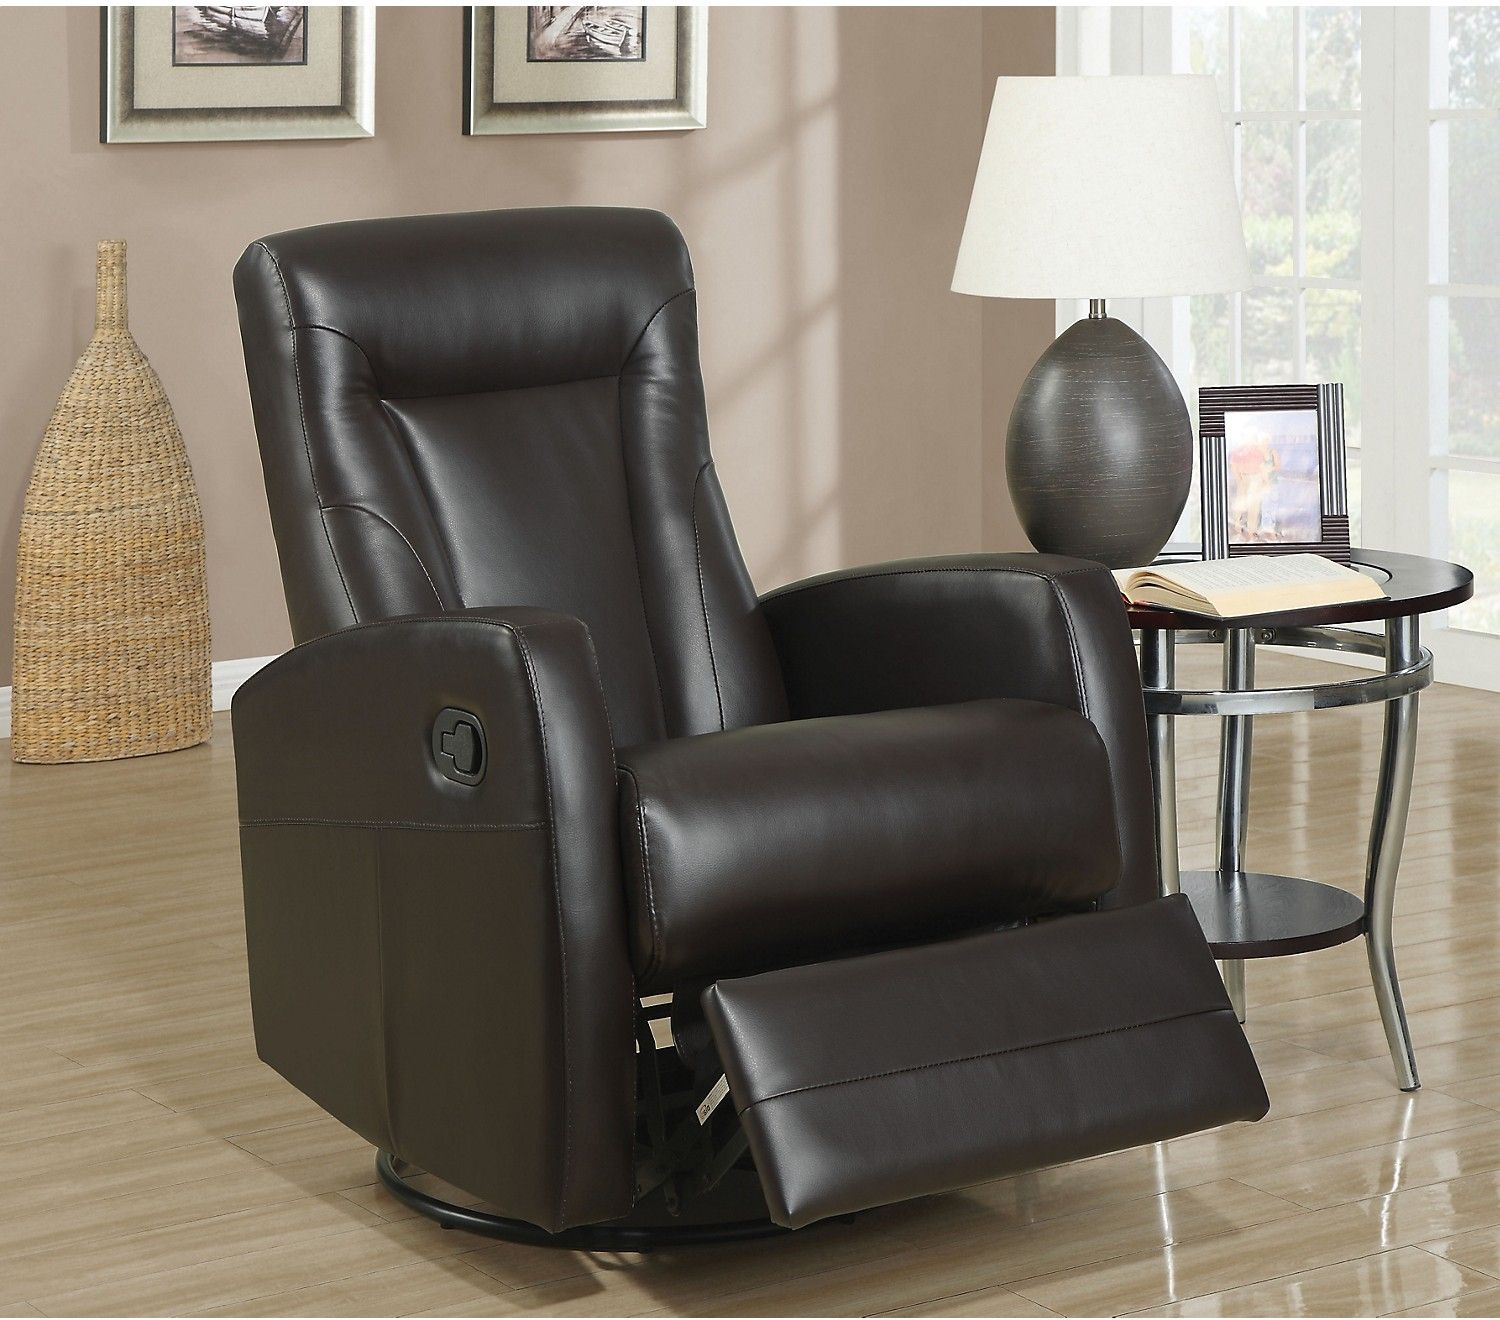 Molly Bonded Leather Swivel Recliner - Brown & Molly Bonded Leather Swivel Recliner - Brown | Swivel recliner ... islam-shia.org